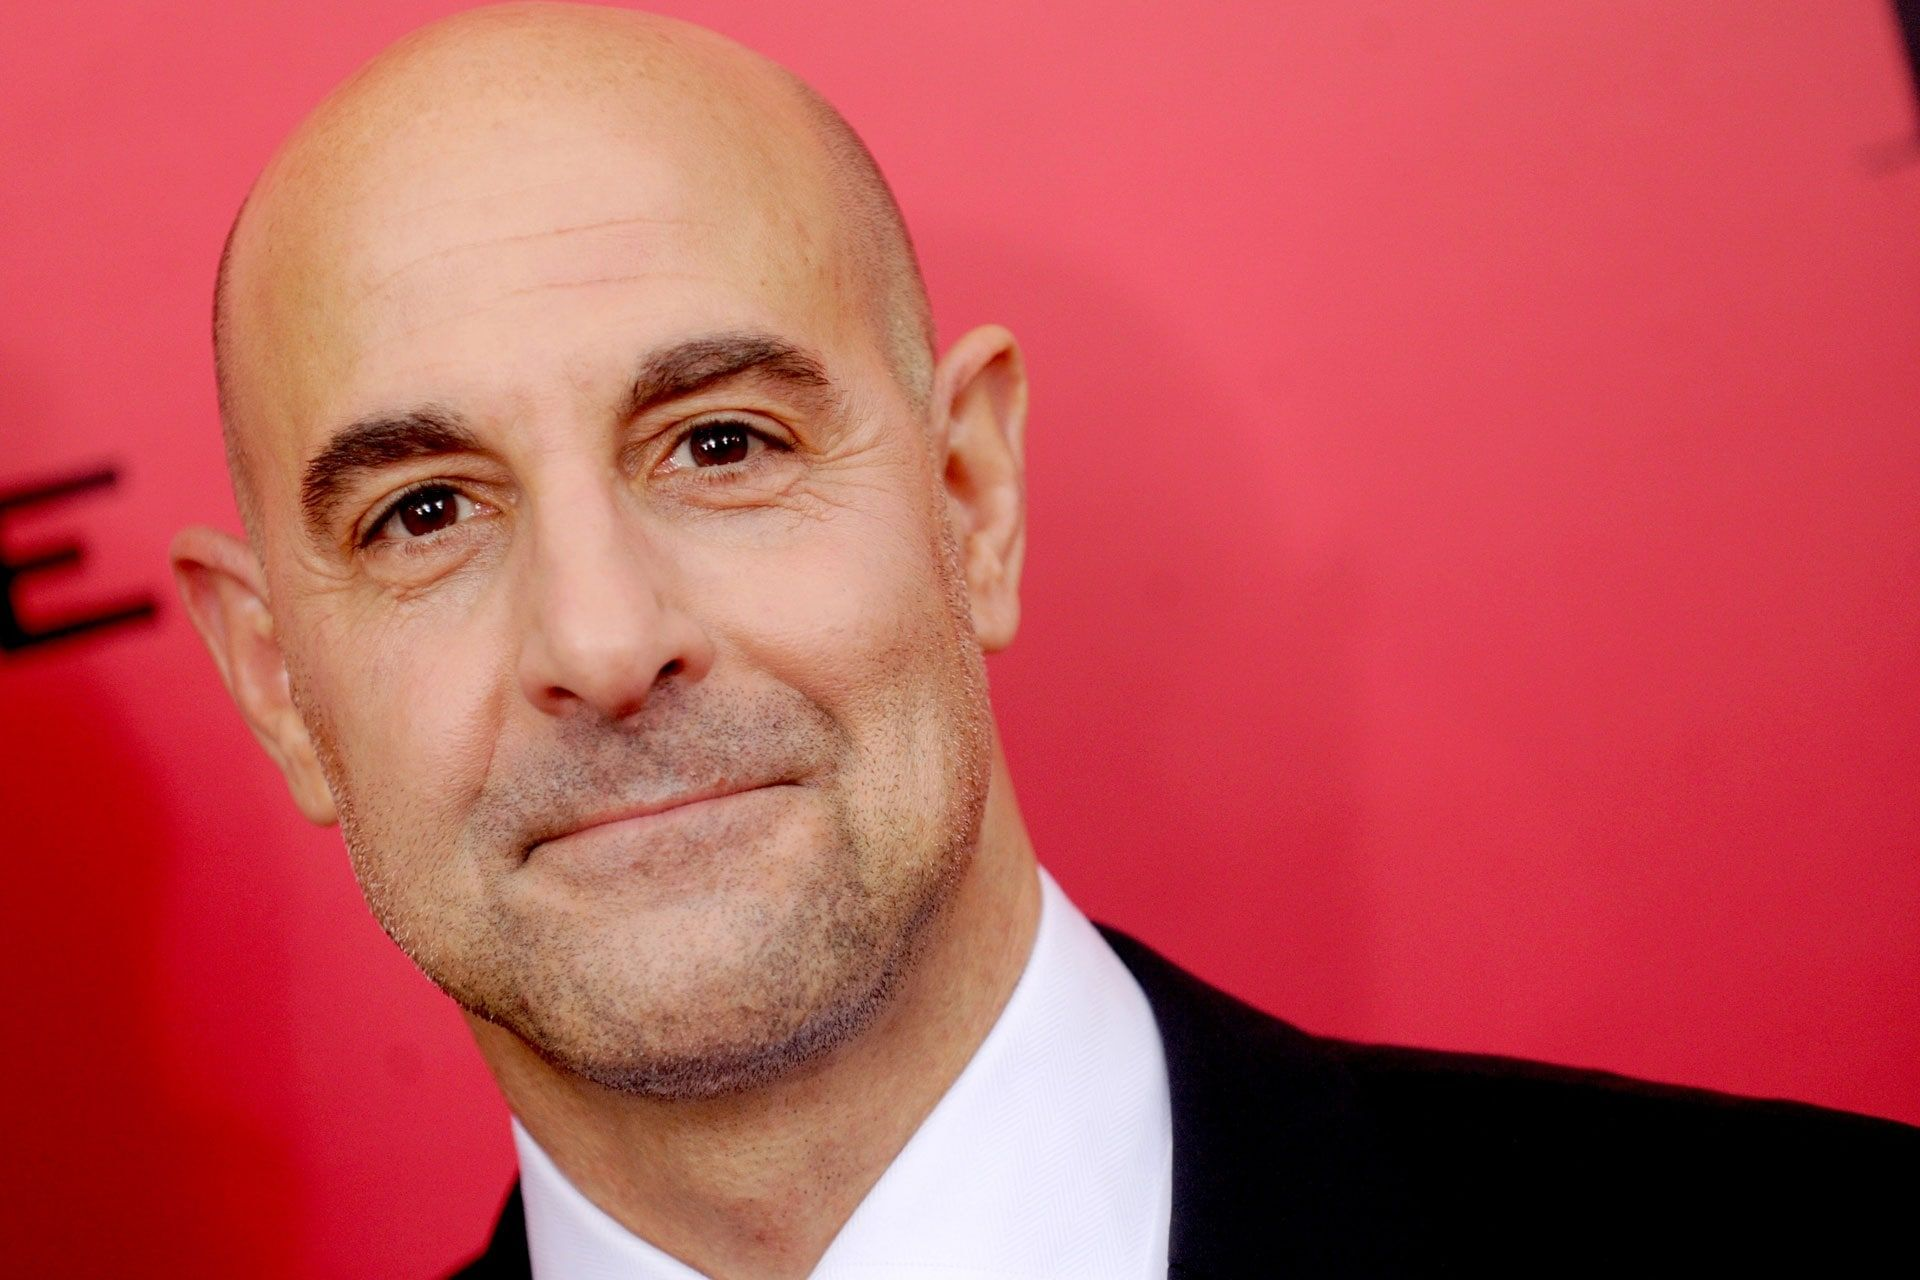 Download Stanley Tucci Celebrity Wallpaper 58728 1920x1280 px High ...